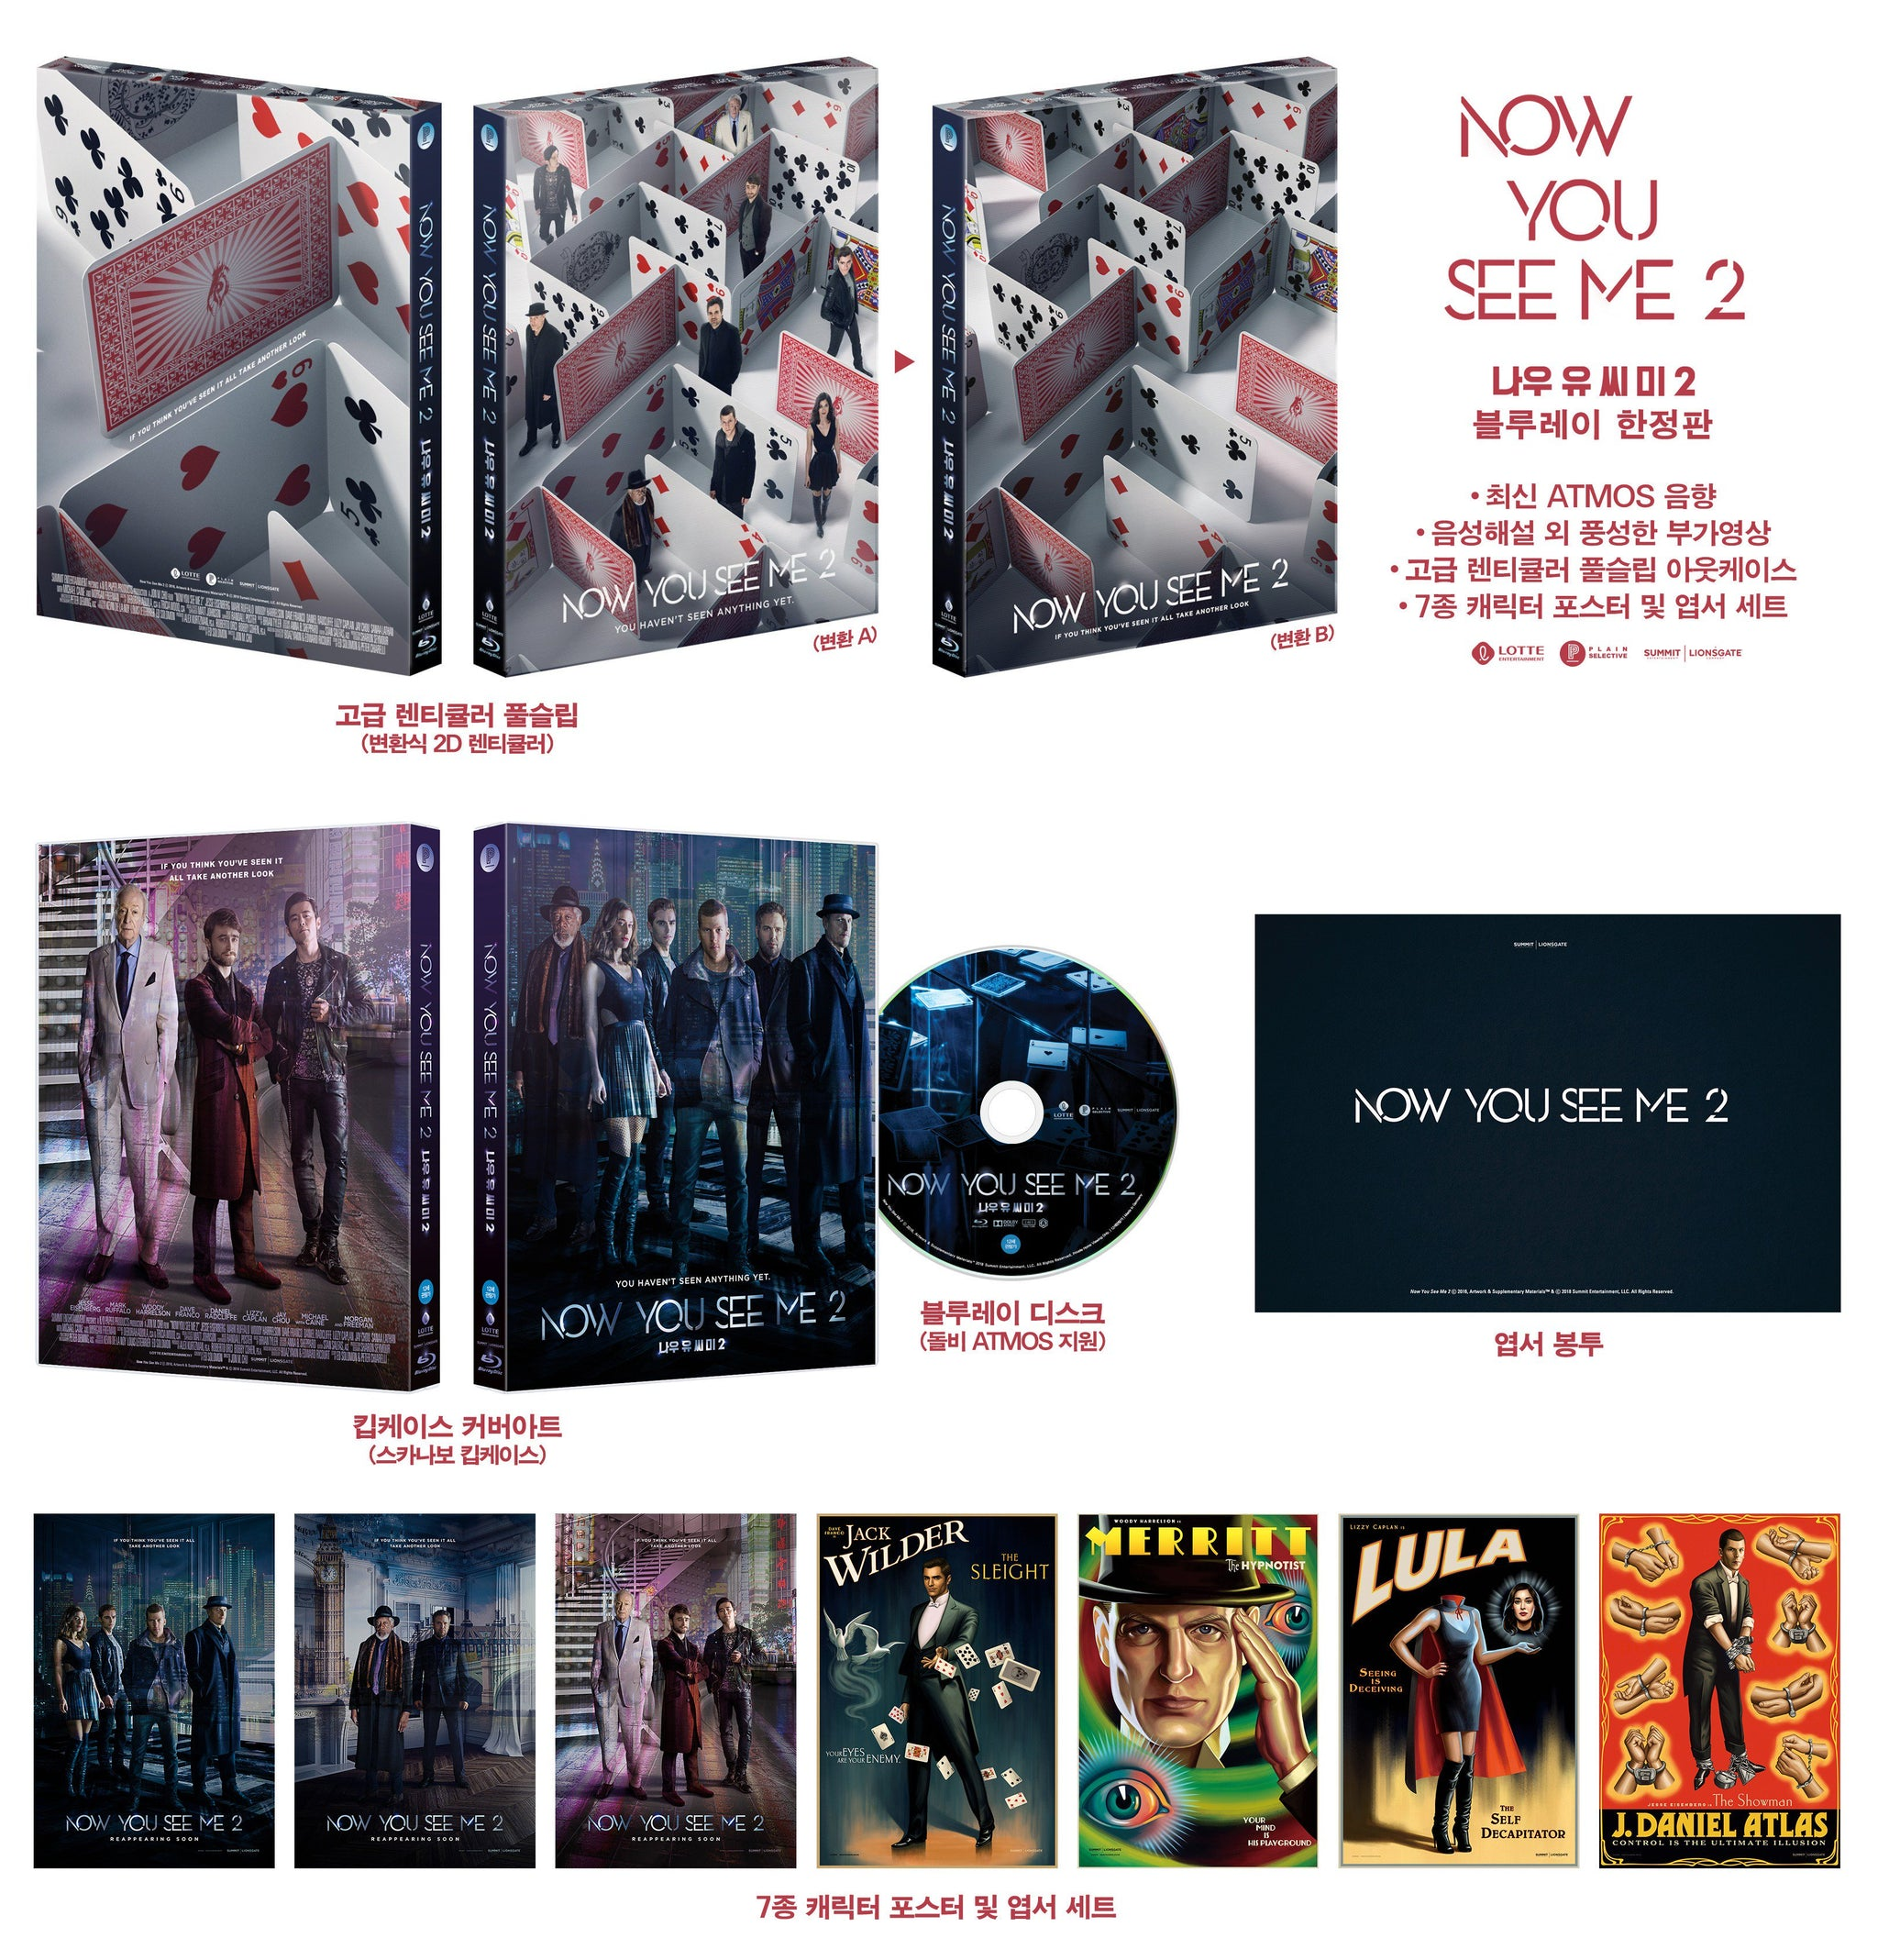 ZERO DARK THIRTY 4K + NOW YOU SEE ME 2 BD (COMBO PACK)